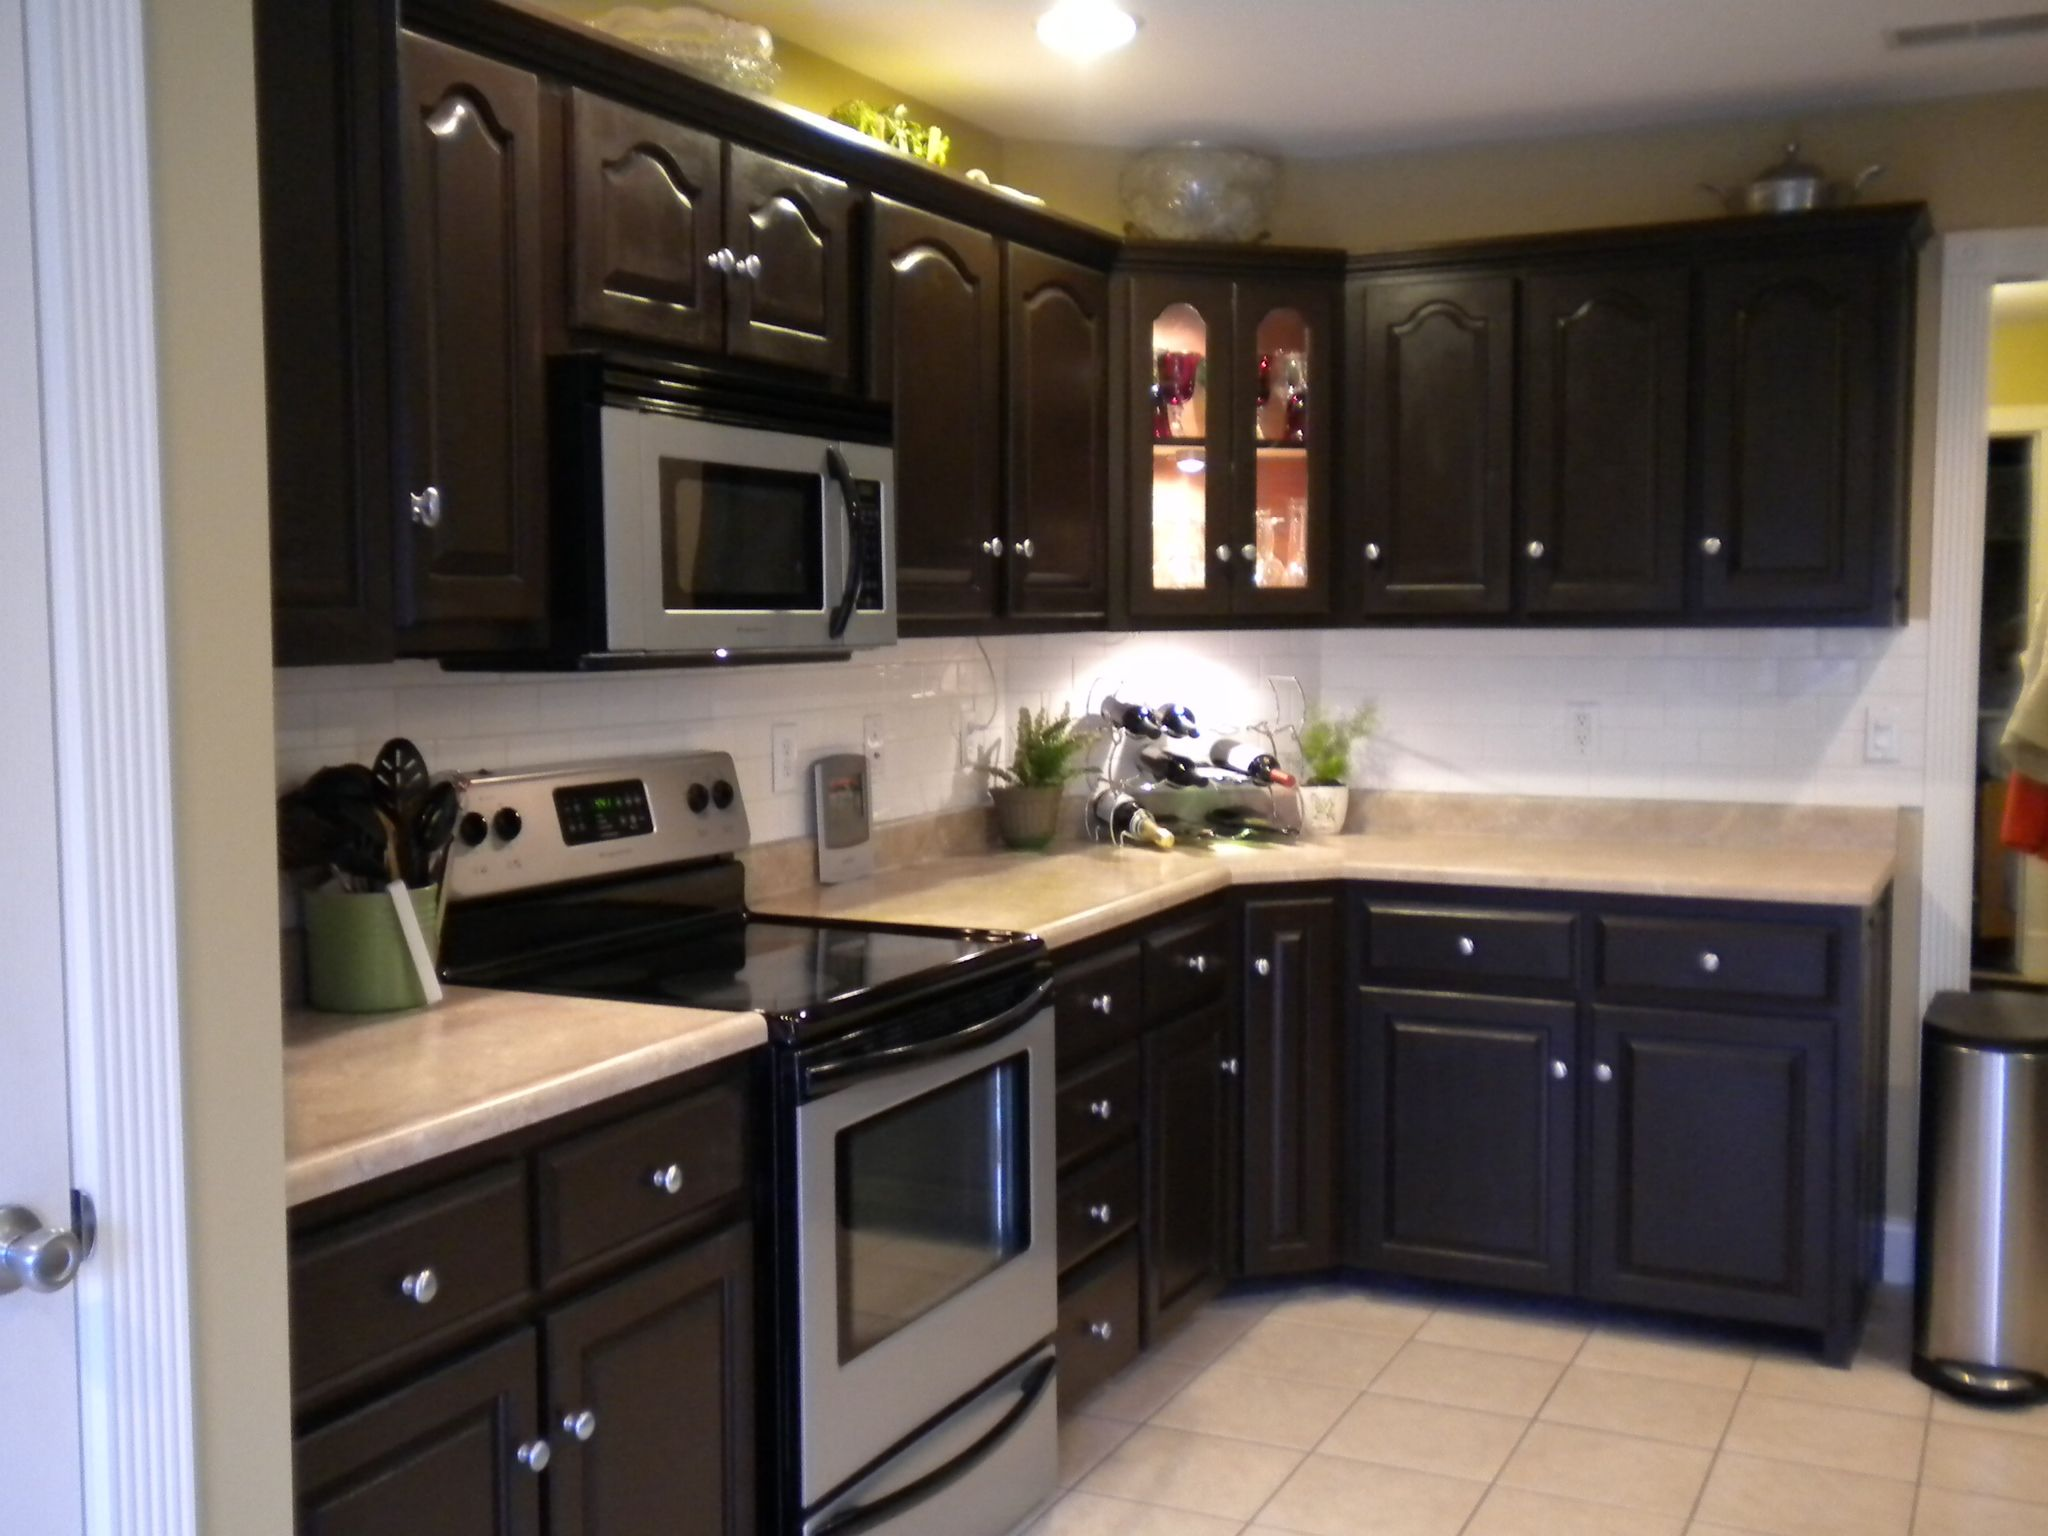 Pin By Teresa Webb On Kitchen Kitchen Redo Kitchen Remodel Painting Oak Cabinets